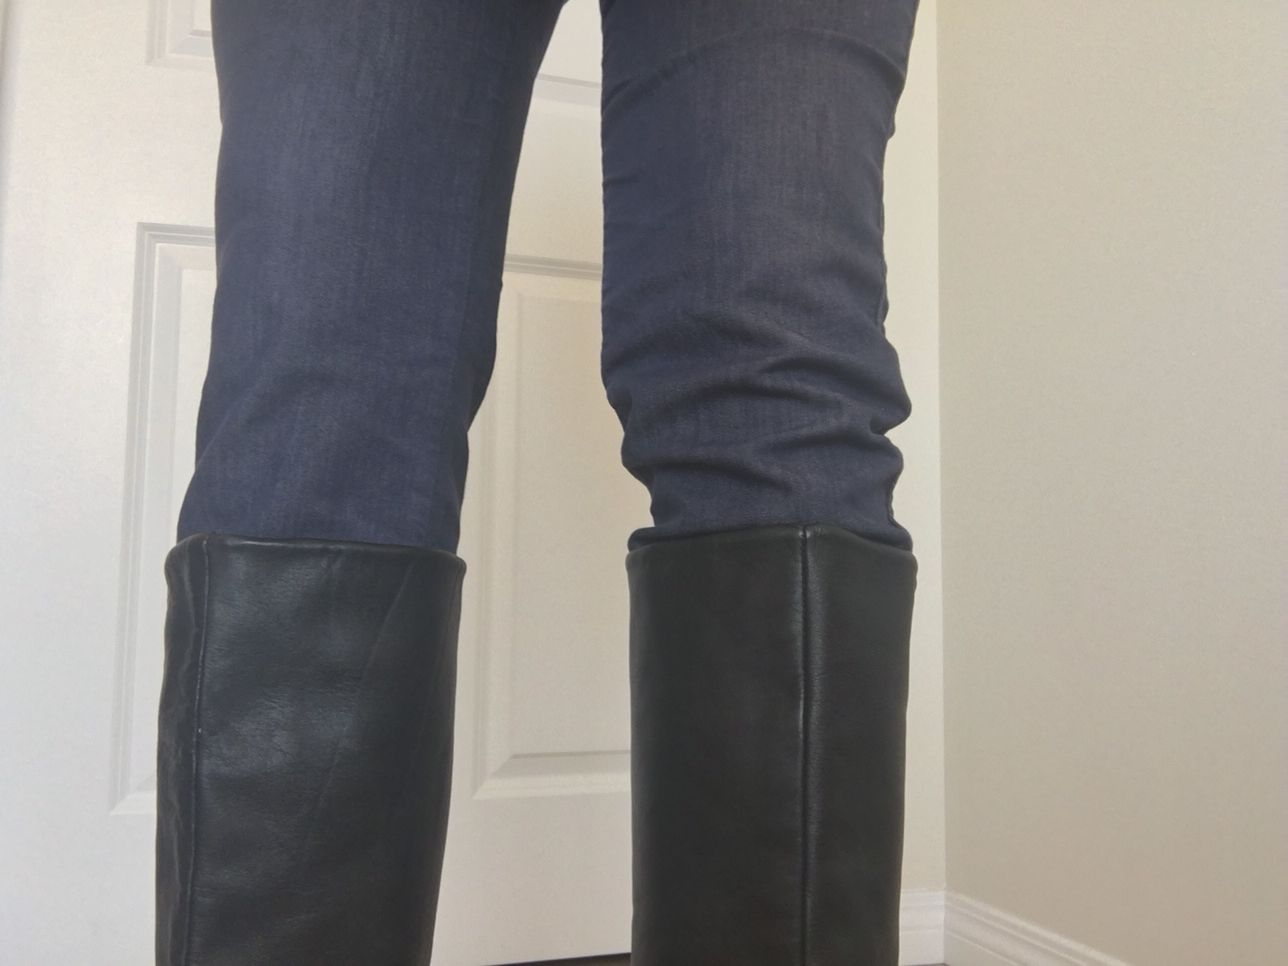 Picture of Keep Your Jeans in Place When Wearing Boots